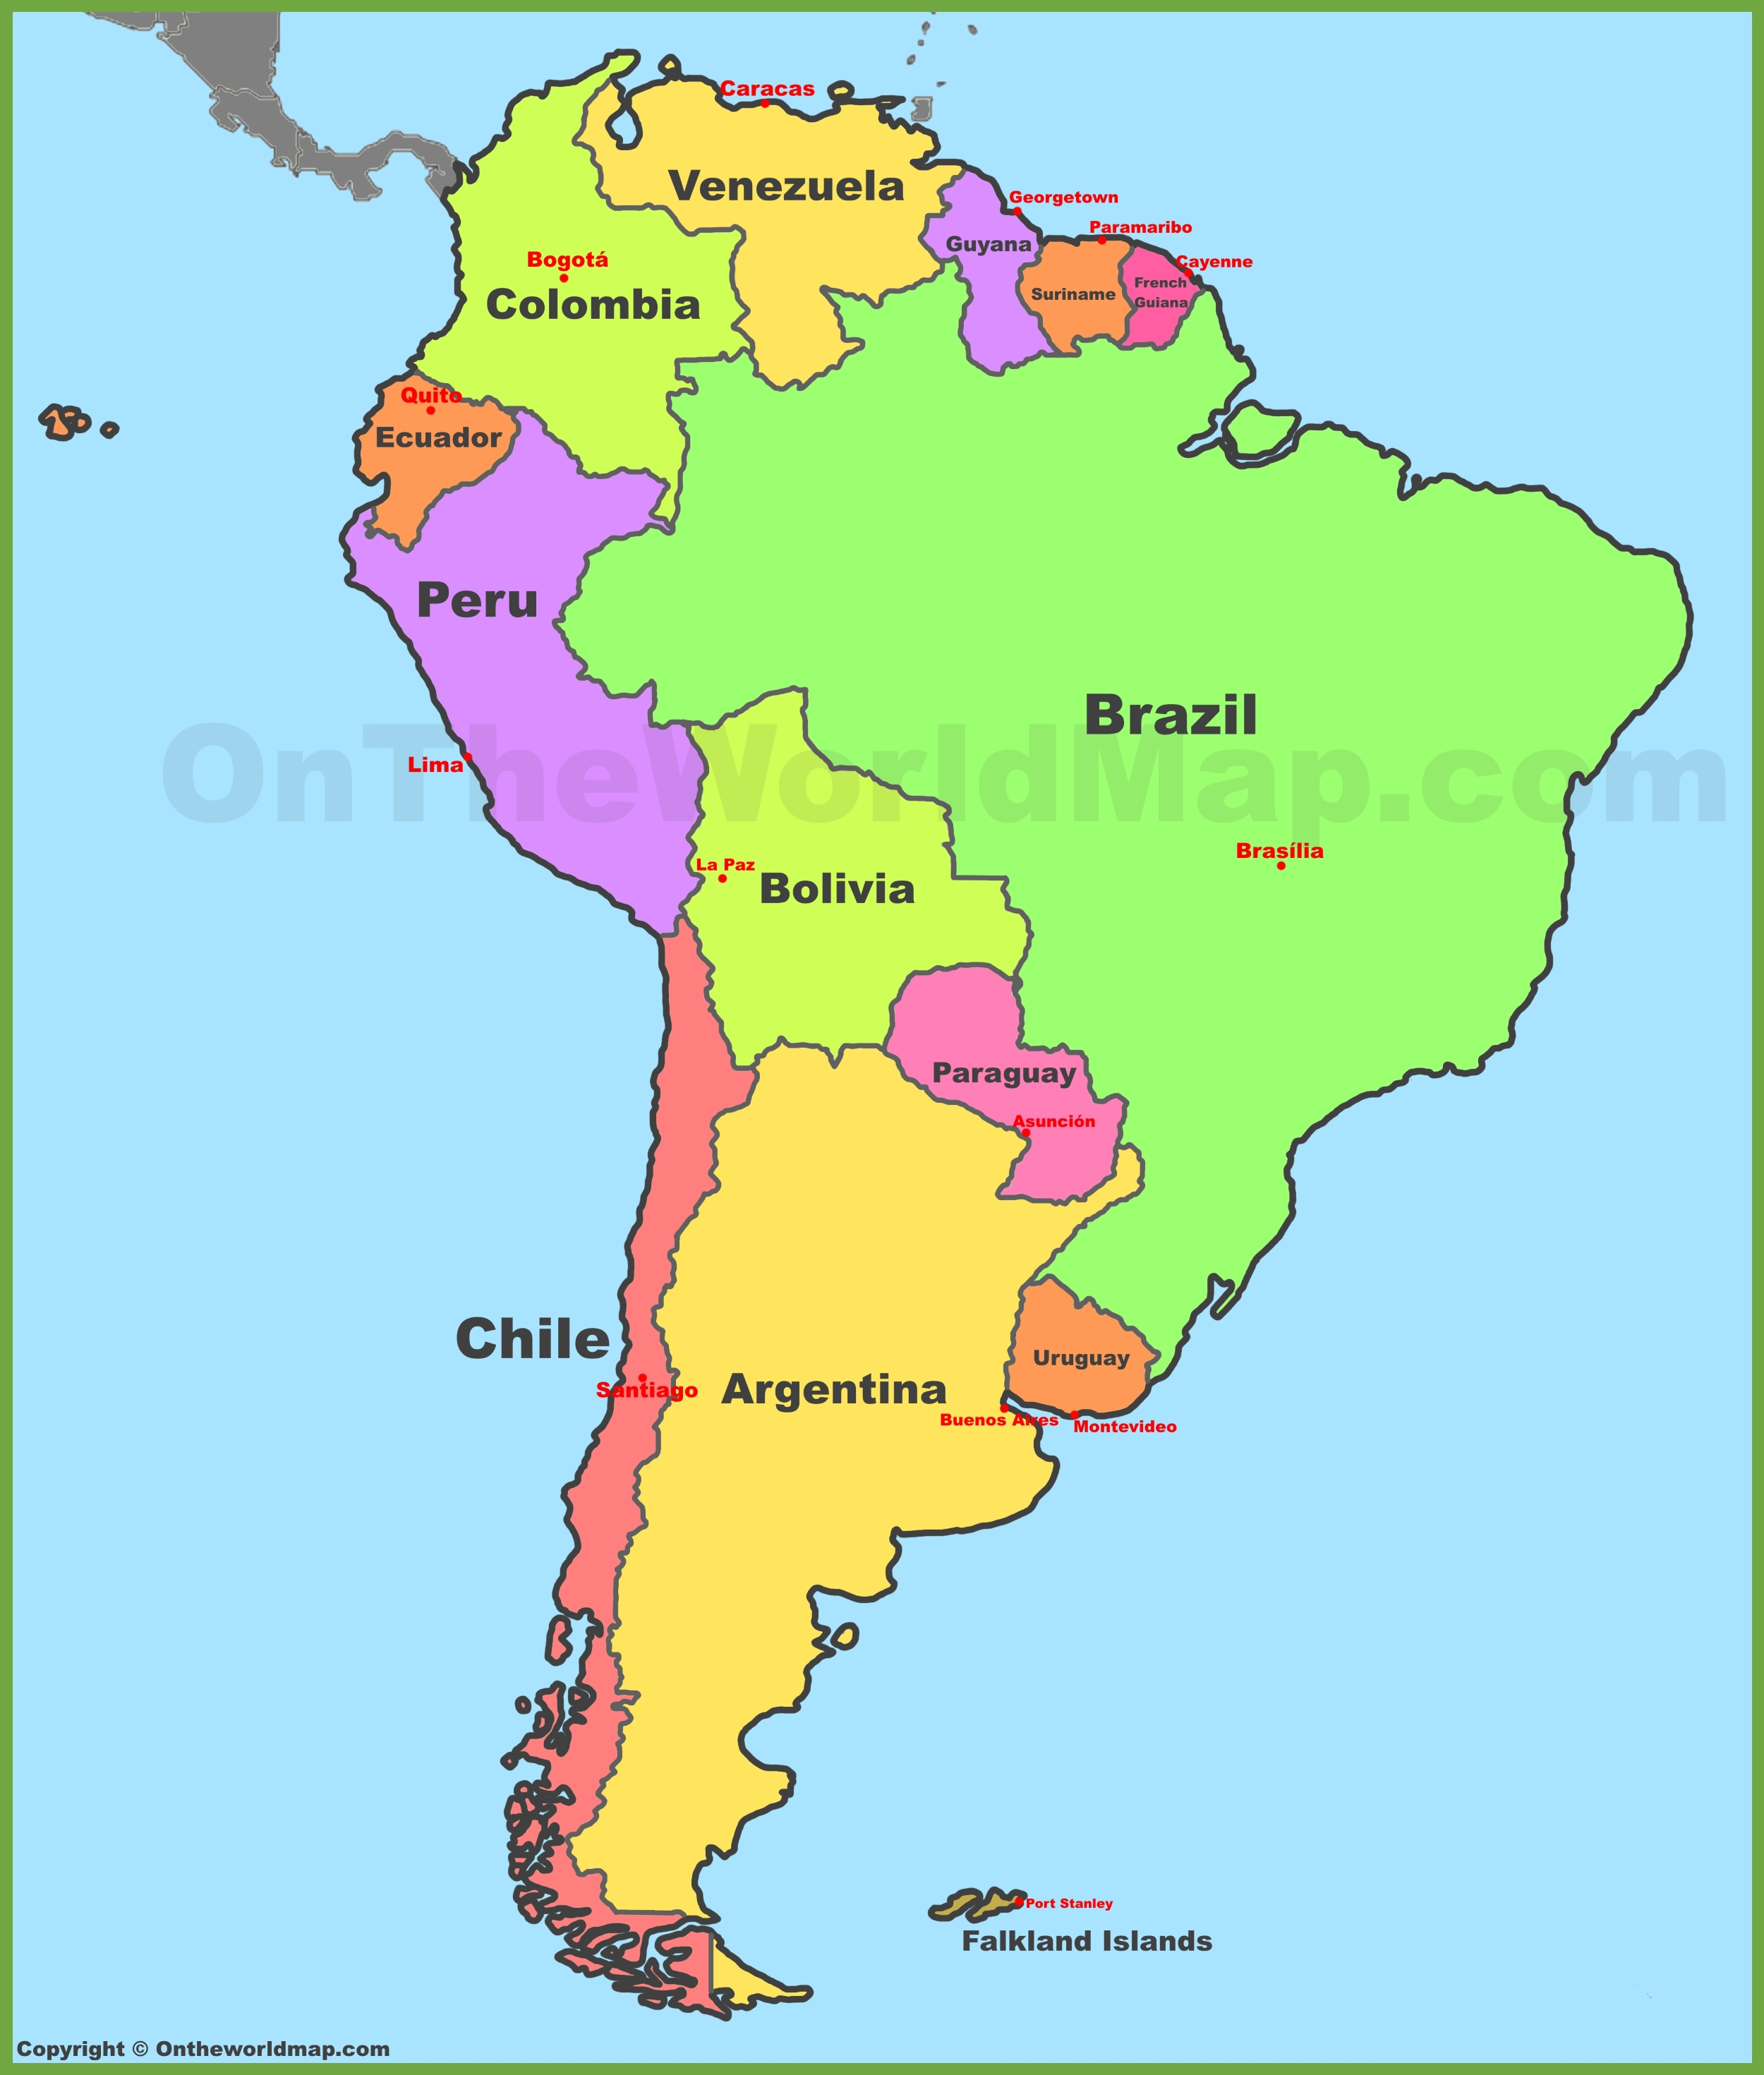 Map Of South America With Capitals Jorgeroblesforcongress - South america capitals map quiz